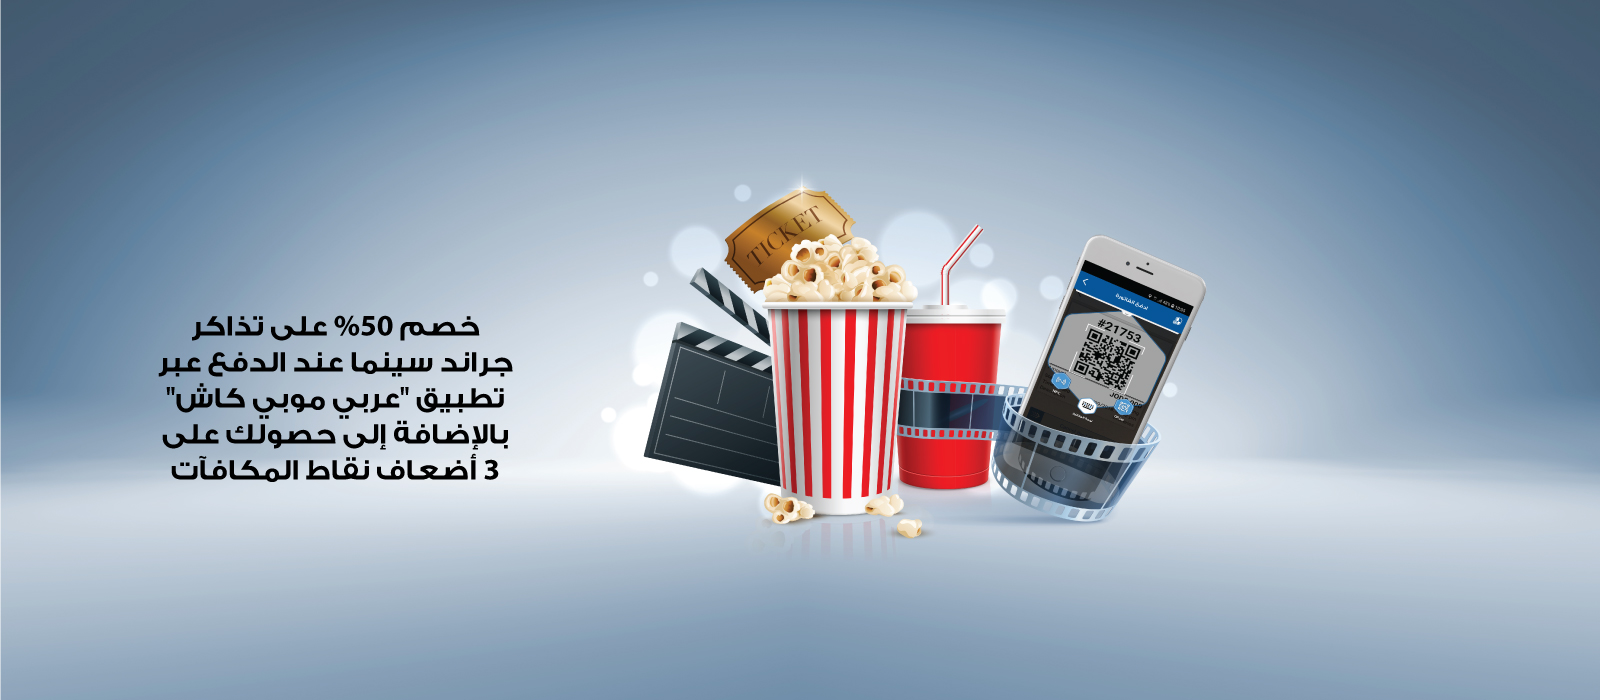 Cinema-New-Website-Banner-1600x700-AR